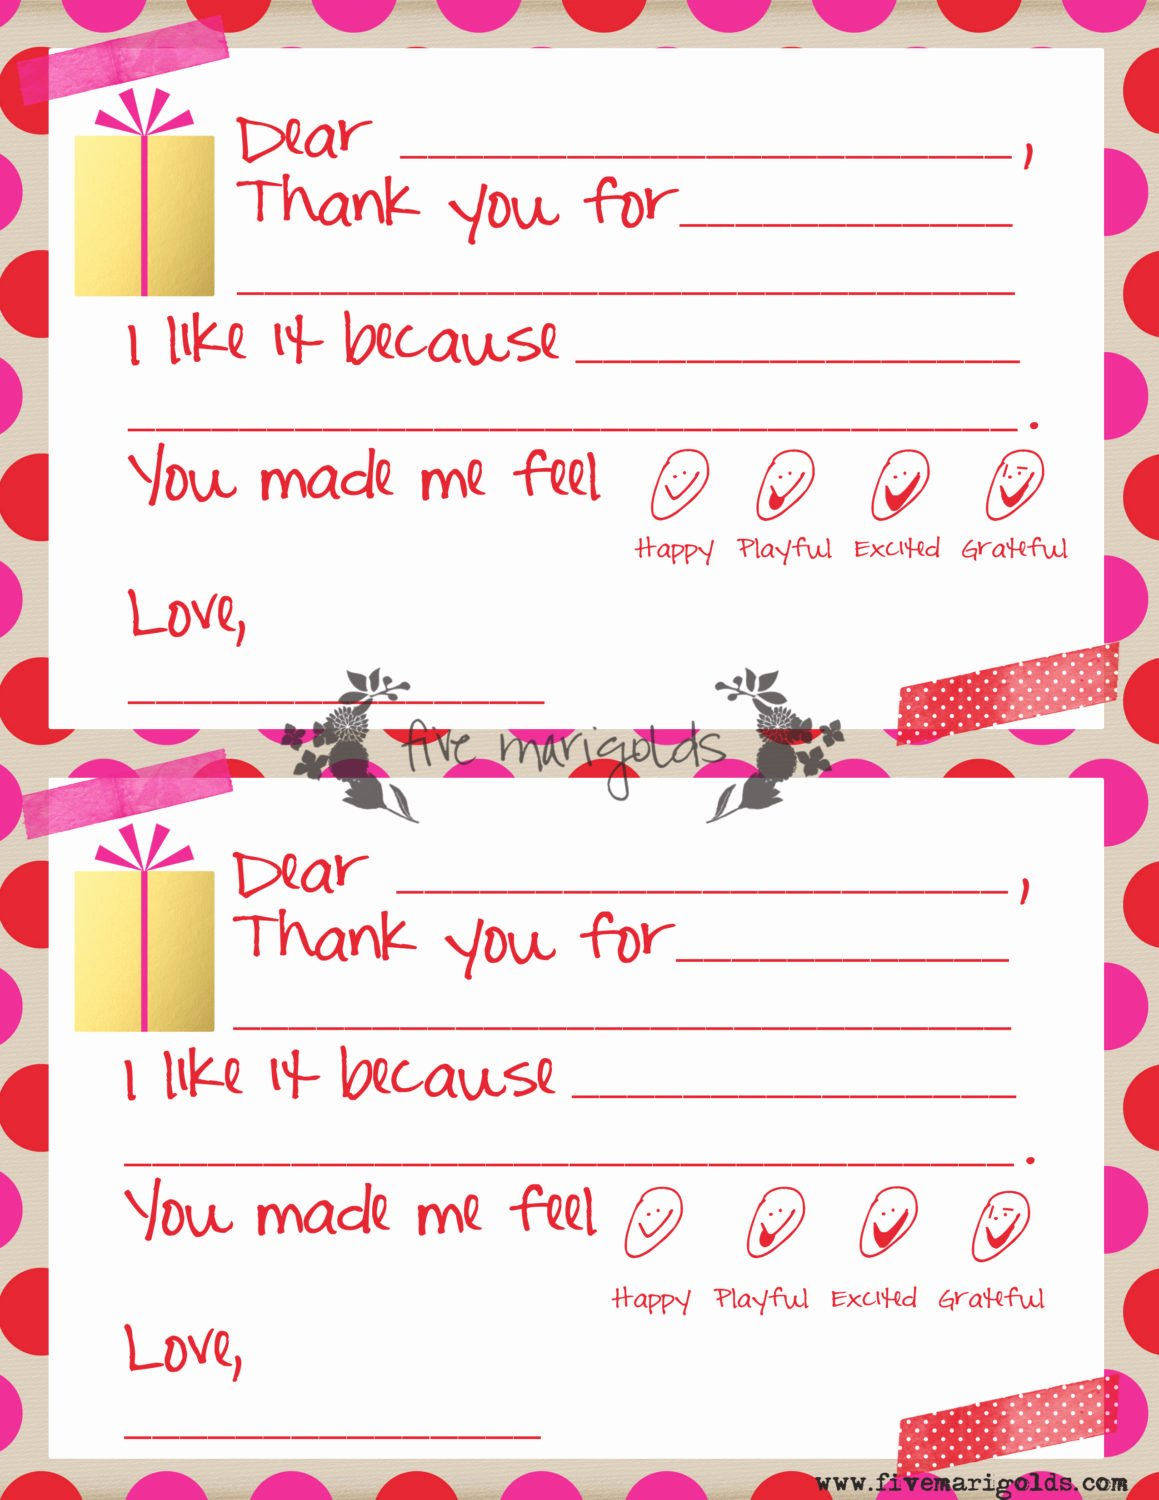 Thank You Template Free Unique Christmas Thank You Note Templates for Kids Five Marigolds